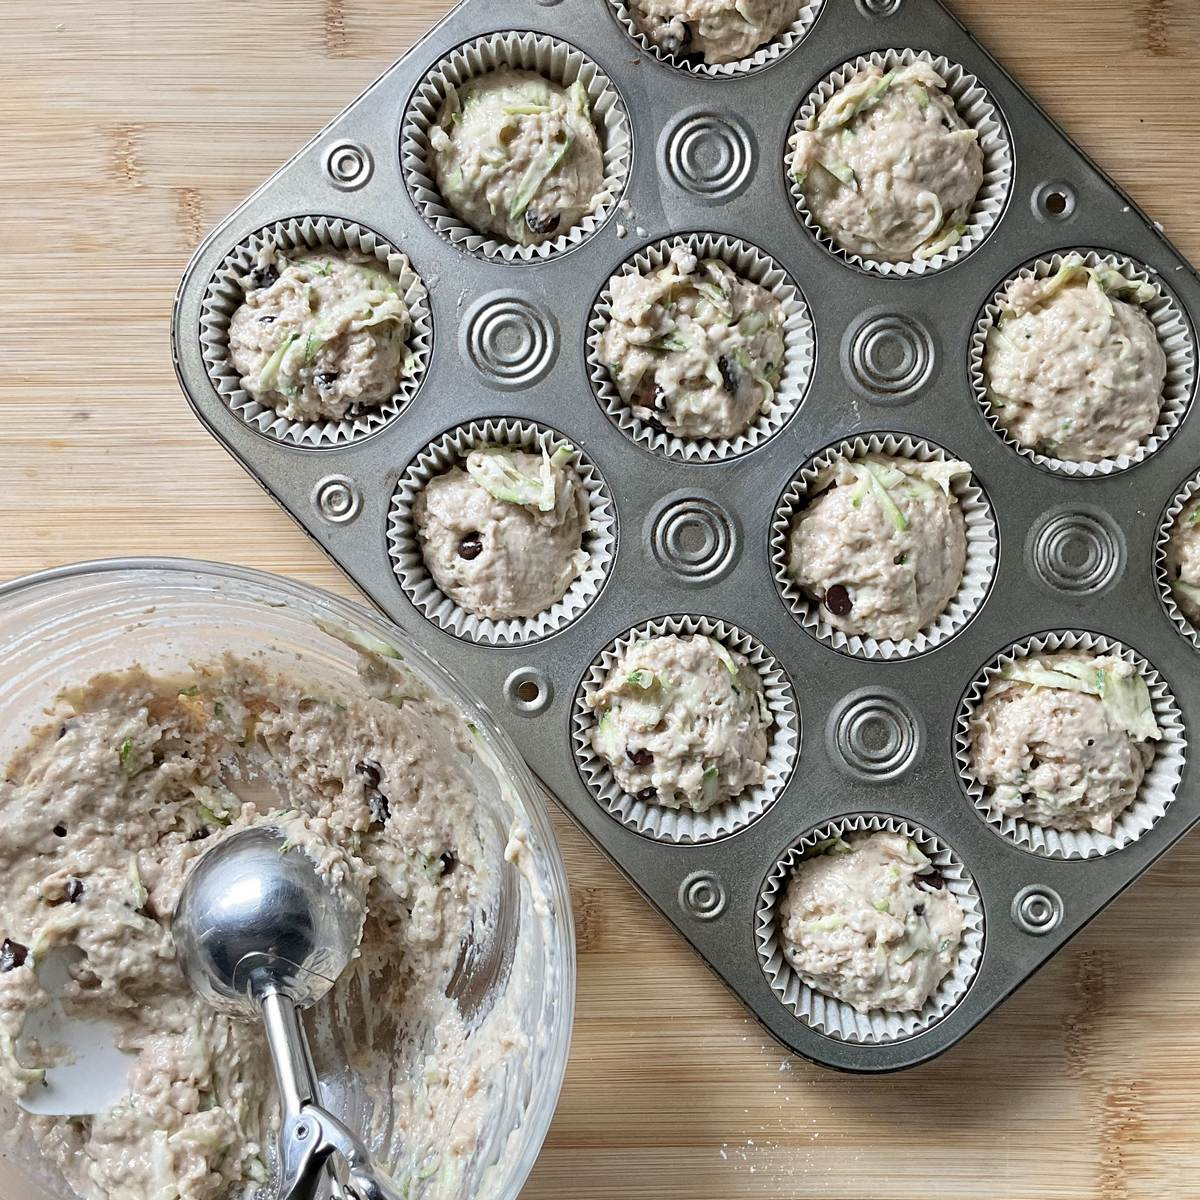 The zucchini muffin batter is being portioned in the muffin tins.